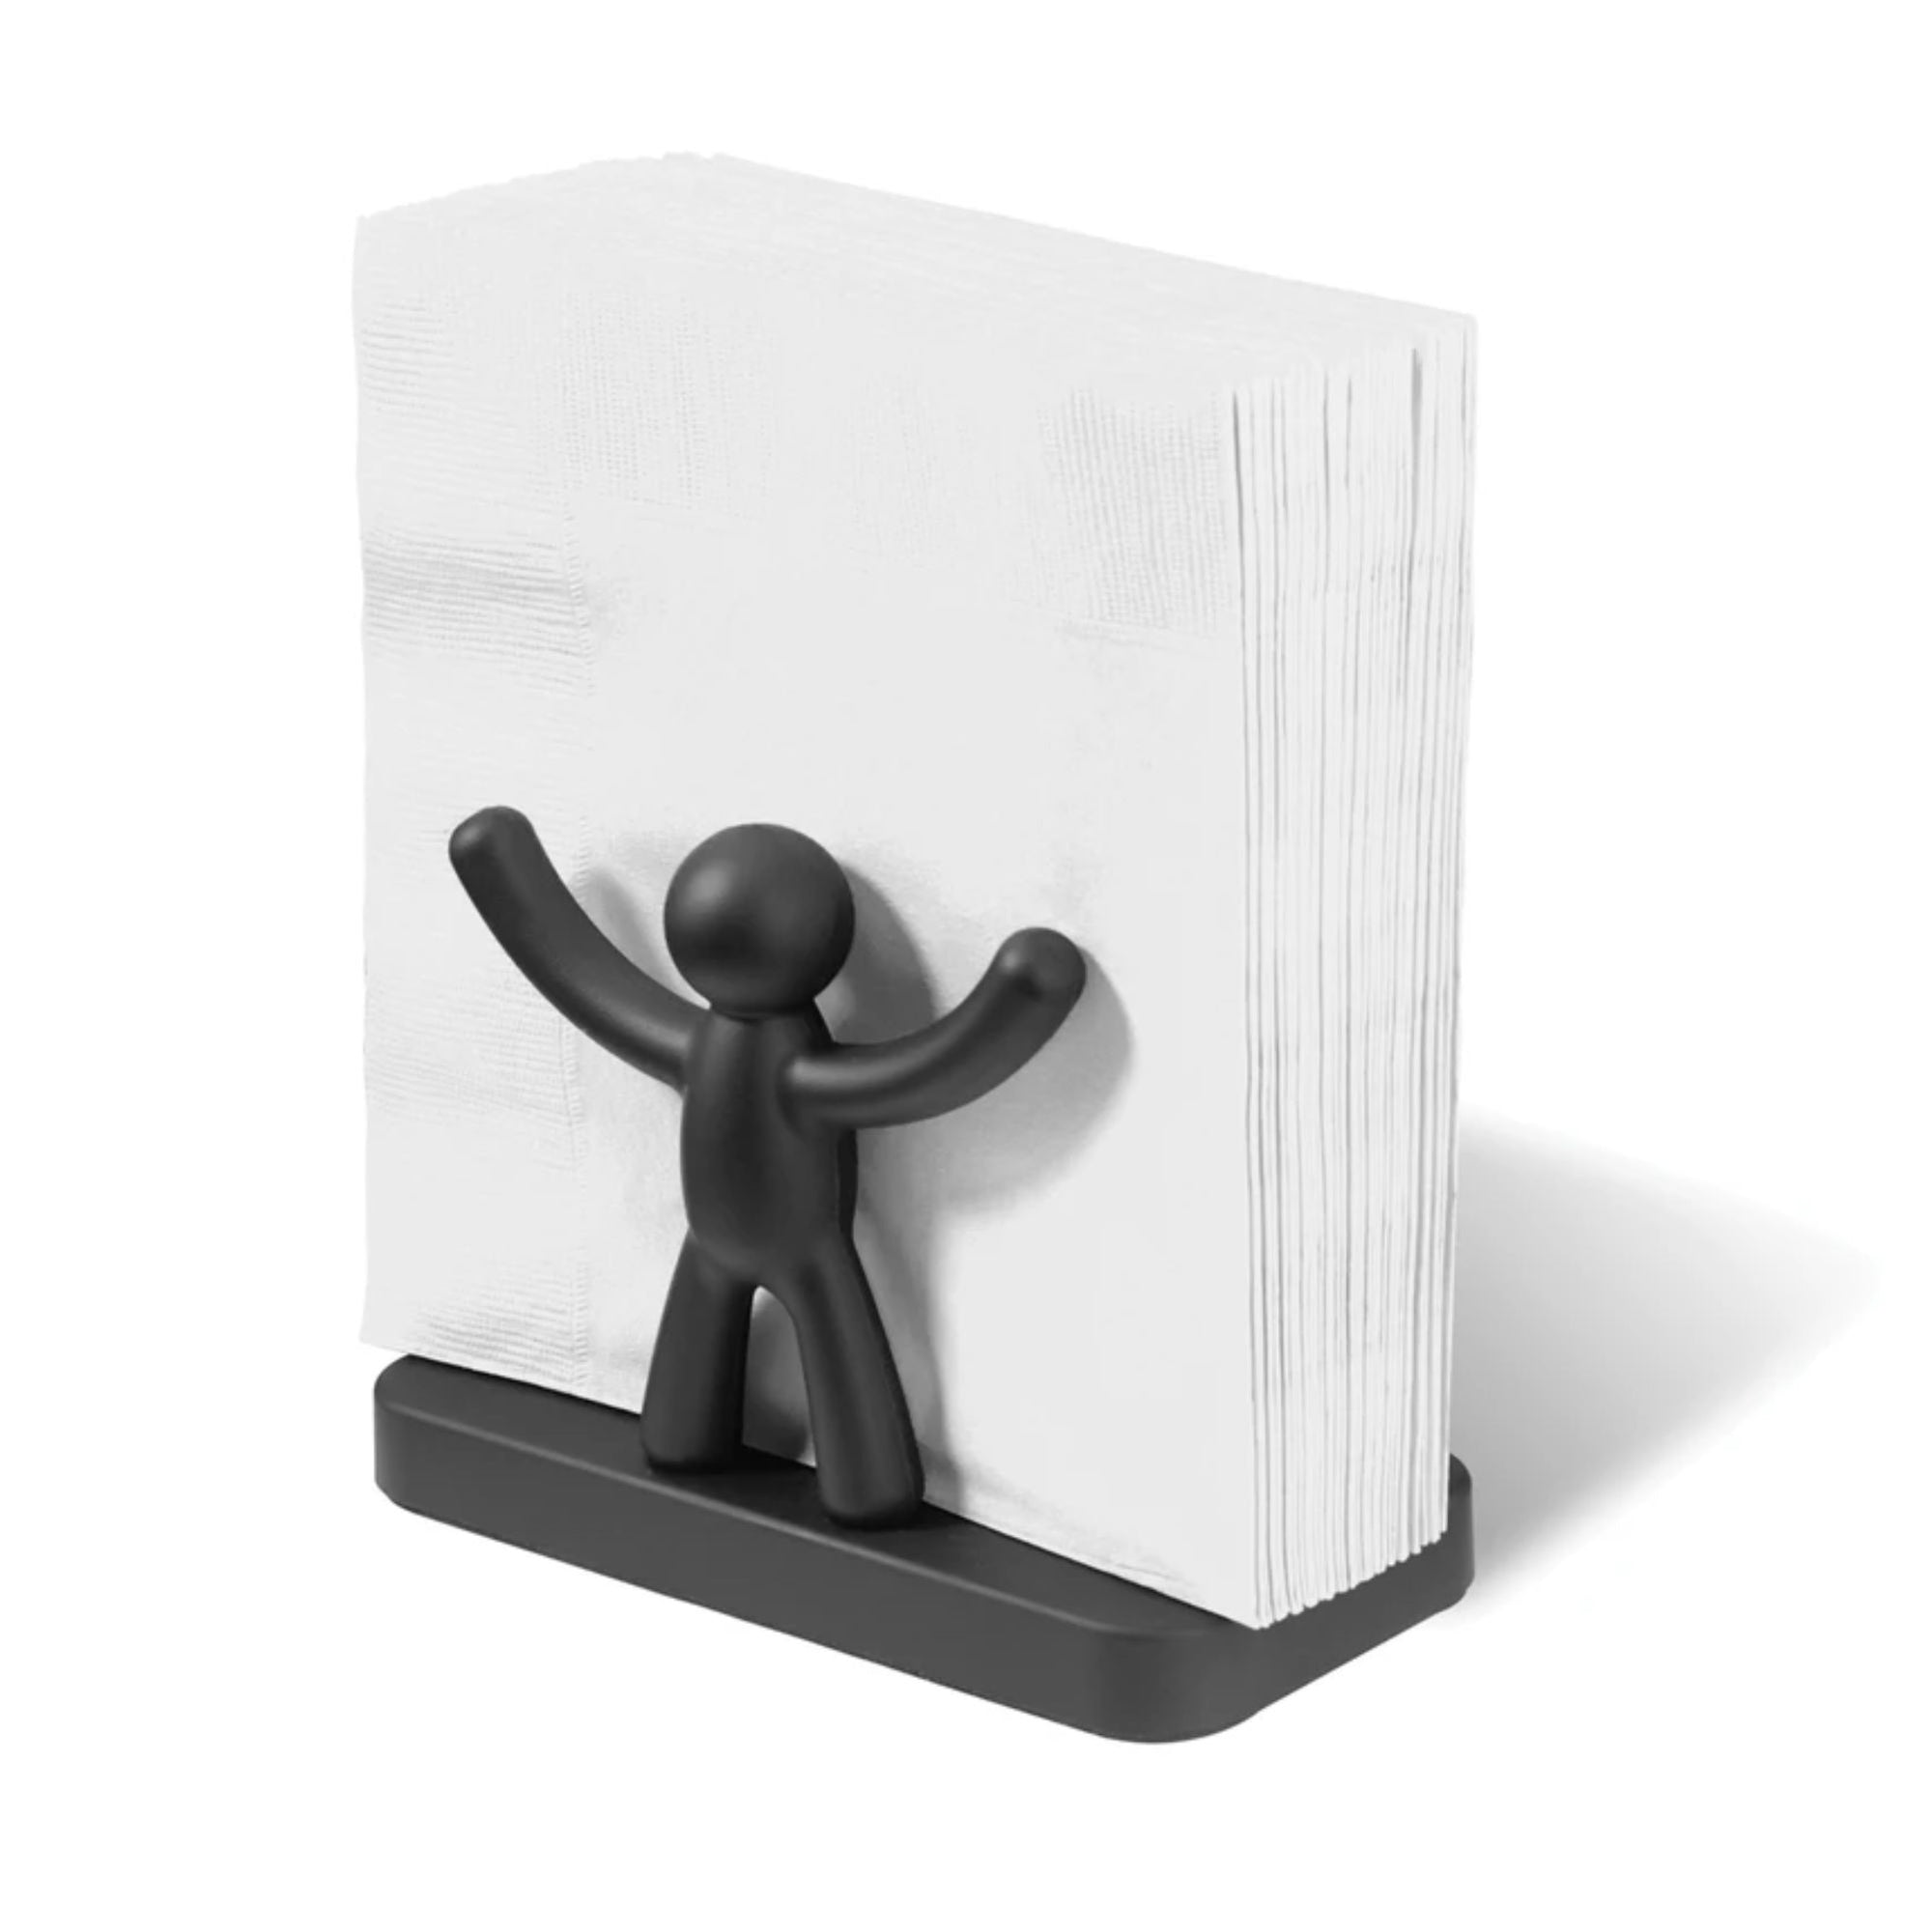 Umbra Buddy napkin holder